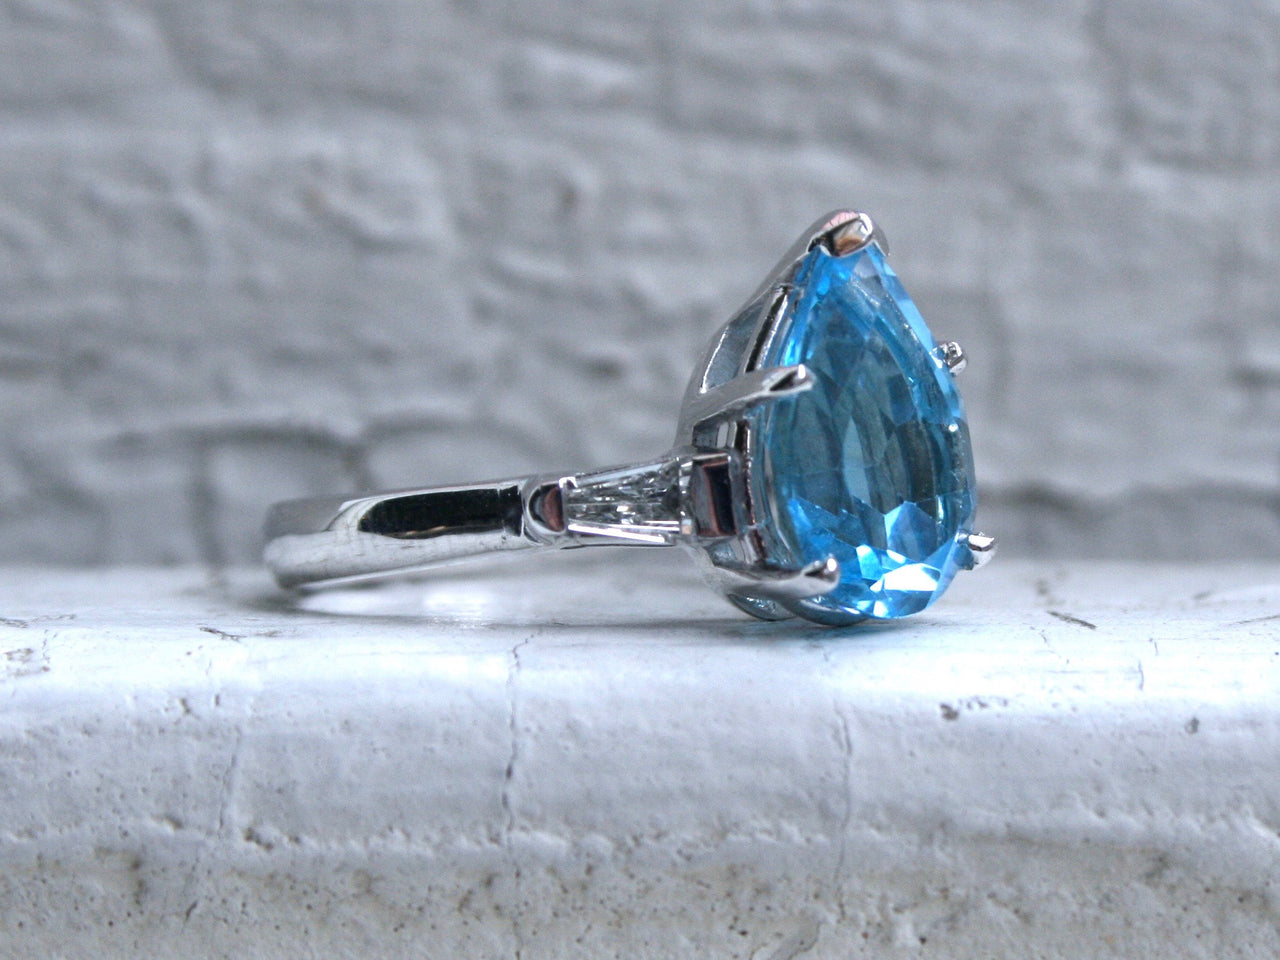 Fantastic Retro Vintage 14K White Gold Blue Topaz Ring with Diamond Accents - 3.95ct.